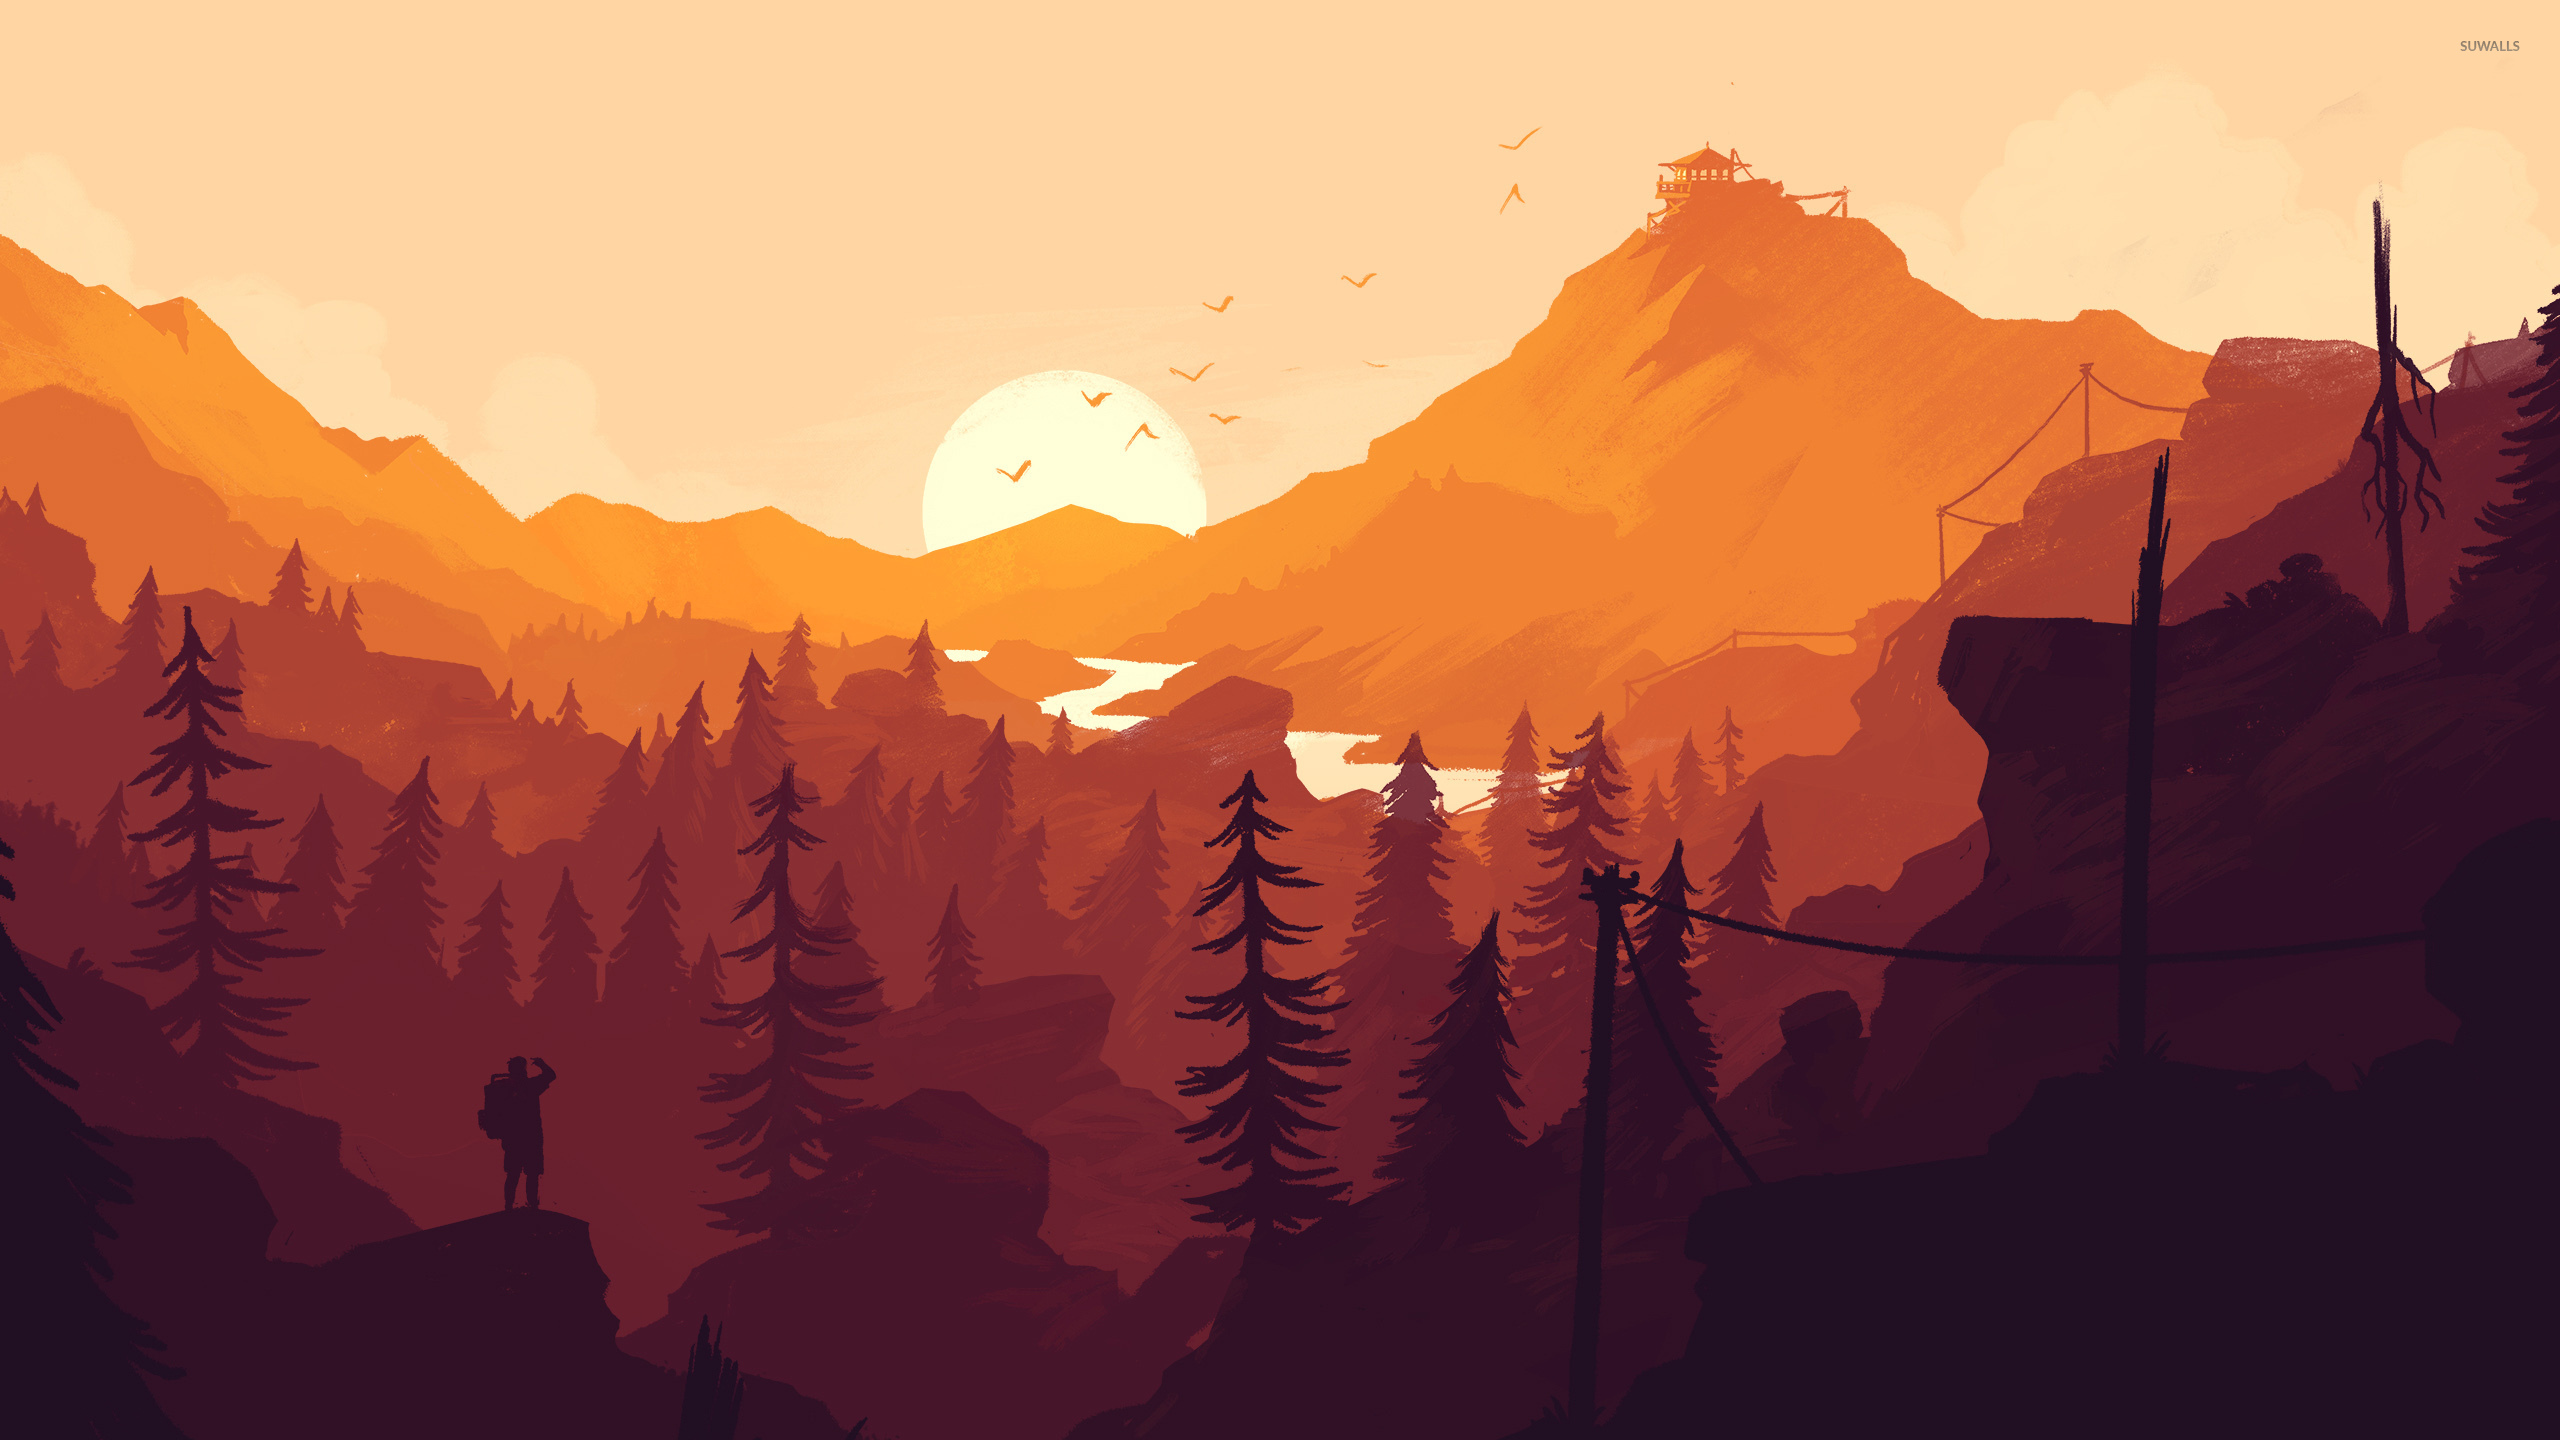 Orange sunset in Firewatch wallpaper Game wallpapers 53317